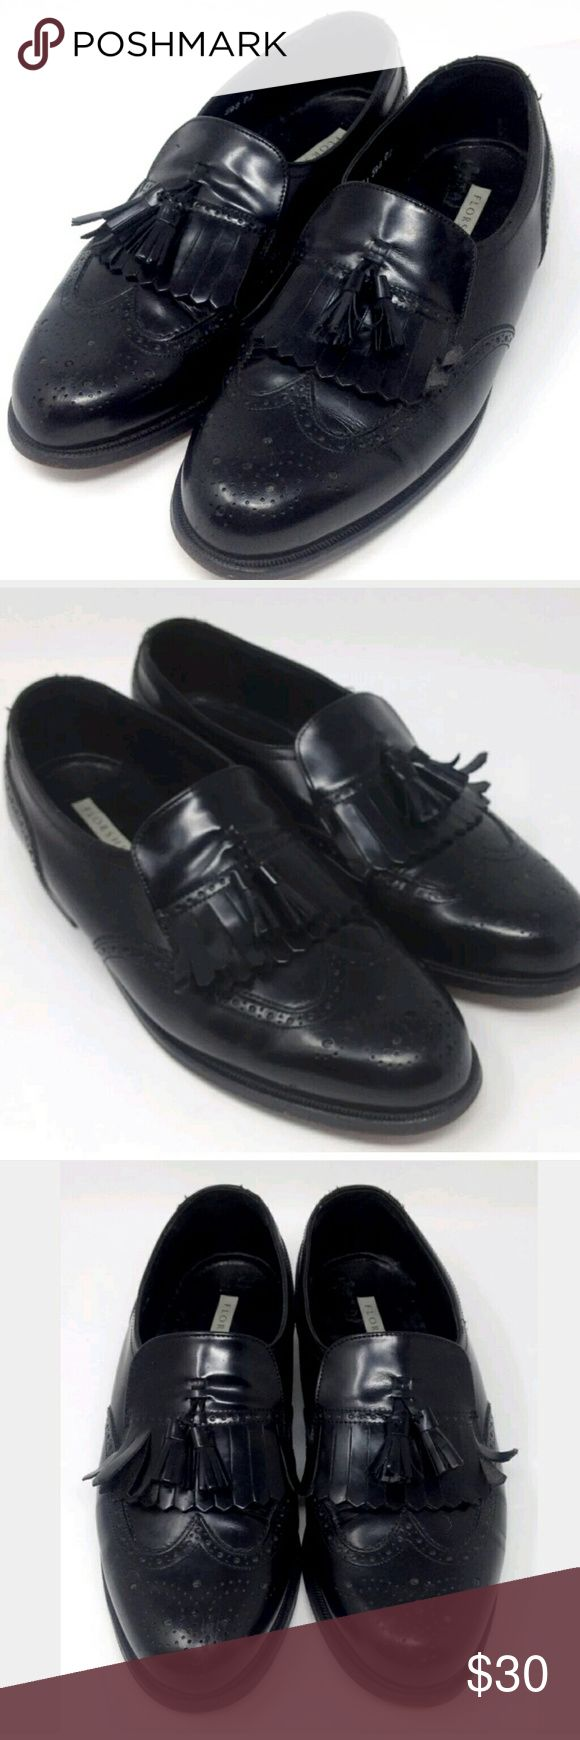 Florsheim Lexington Wing Tip Shoes 8.5 3E Florsheim Dress Shoes Men's Lexington Wing Tip Kiltie Gloss Black Leather Slip On Business Formal Tassel Loafers Size US 8.5 (3E)  Extra, Extra, Extra Wide / EU 41.5 - Great preowned condition, with light signs of wear to the insoles, and bottom soles, Uppers are in Excellent Condition.....Cleaned, Polished, and ready to wear....Enjoy! Florsheim Shoes Loafers & Slip-Ons